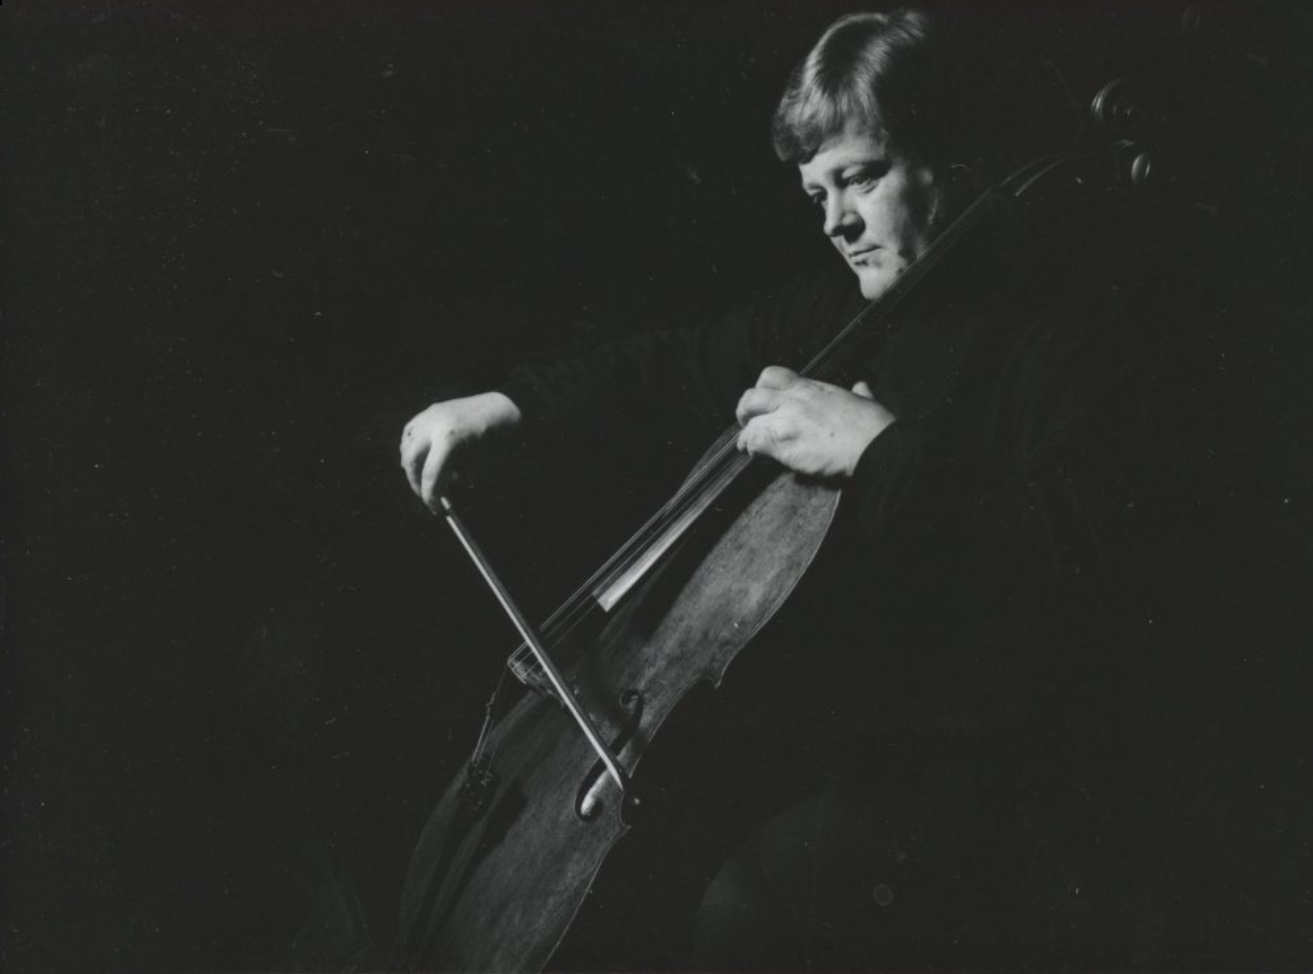 Philip de Groote The Chilingirian Quartet